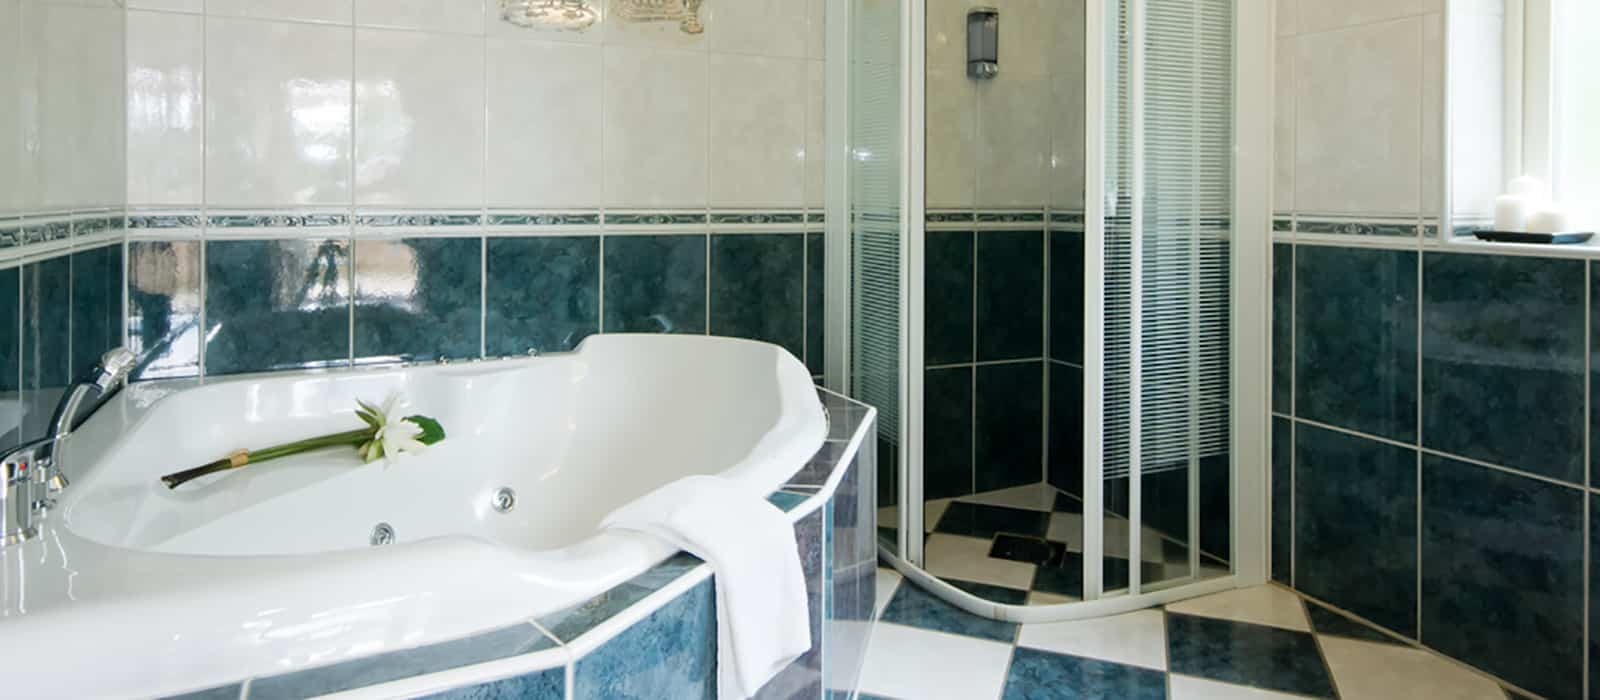 Hotell med privat jacuzzi